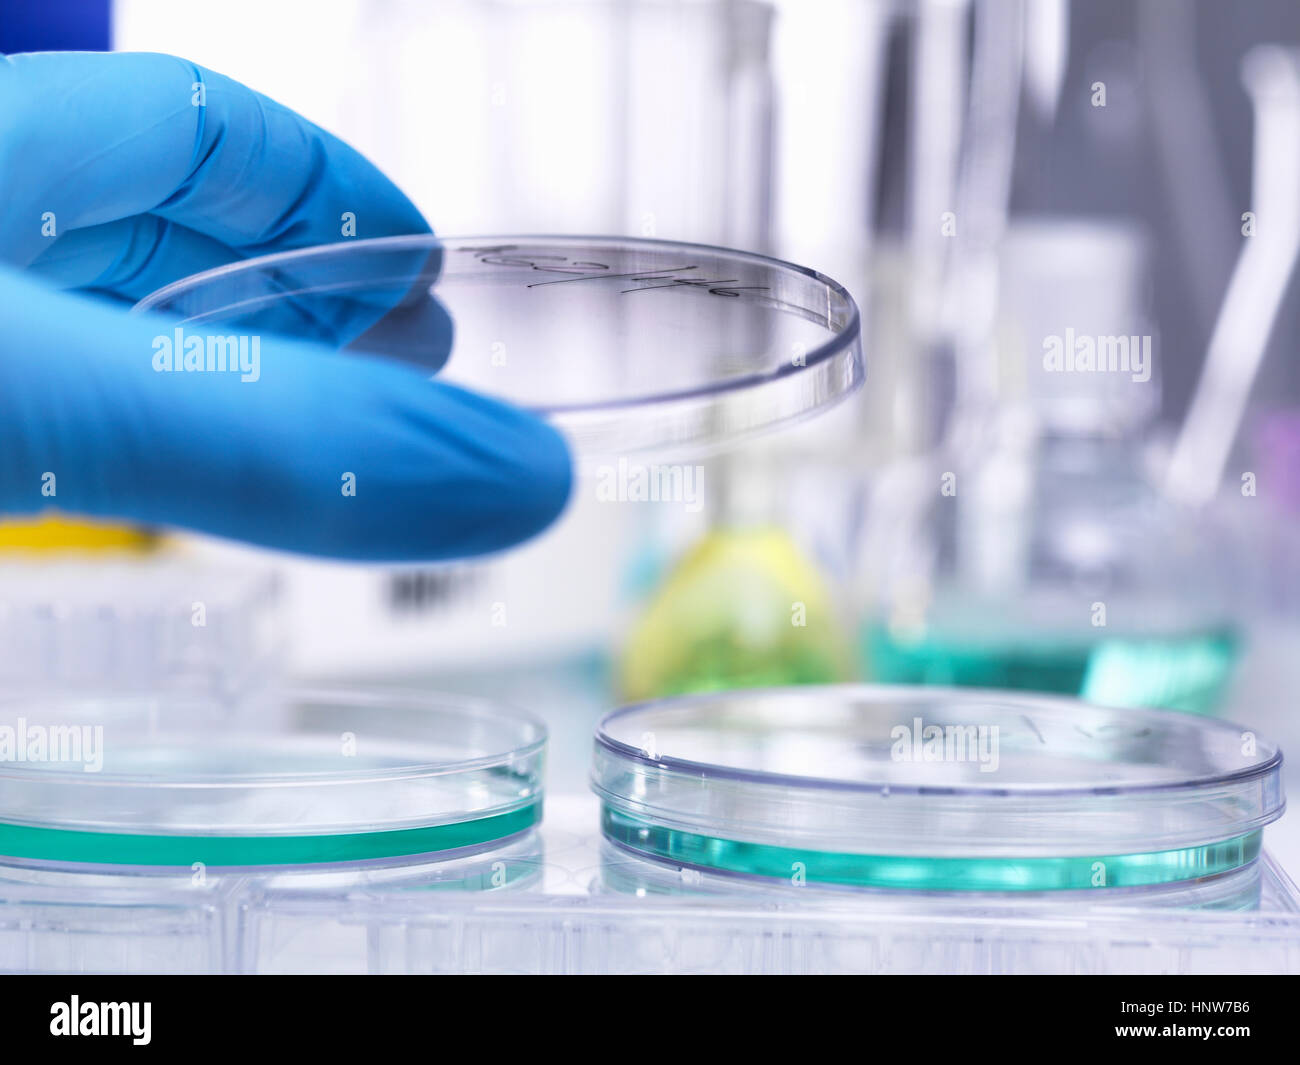 Scientist lifting lid of petri dish to inspect growth of specimen during experiment in laboratory - Stock Image